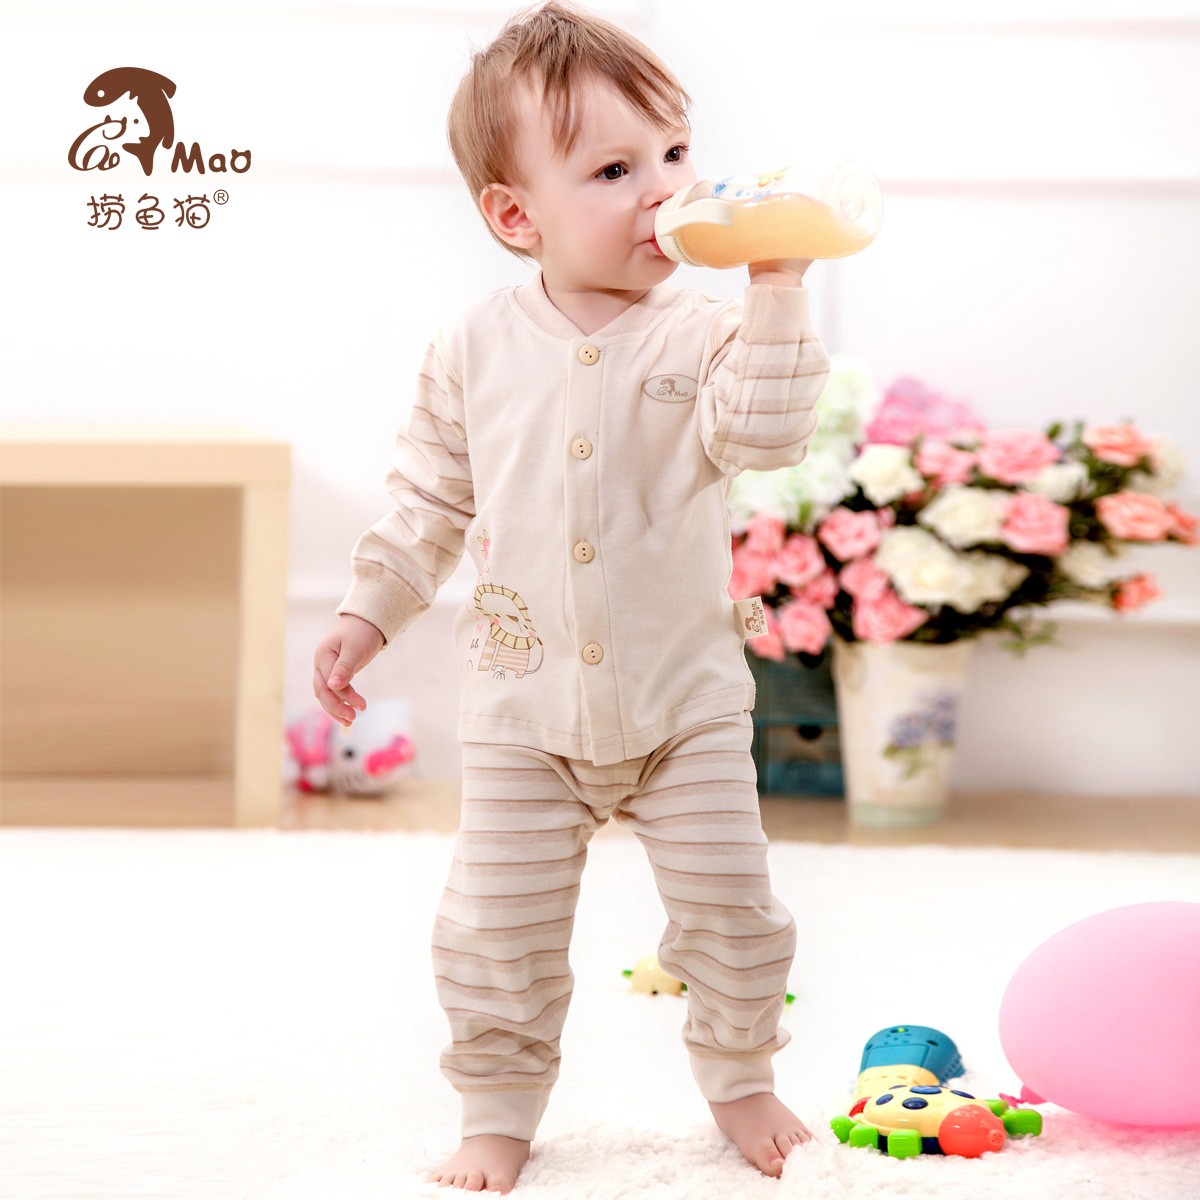 Laoyu cat children's underwear suit boy female children's clothing spring and autumn long sleeve pajamas treasure treasure underwear autumn baby clothes